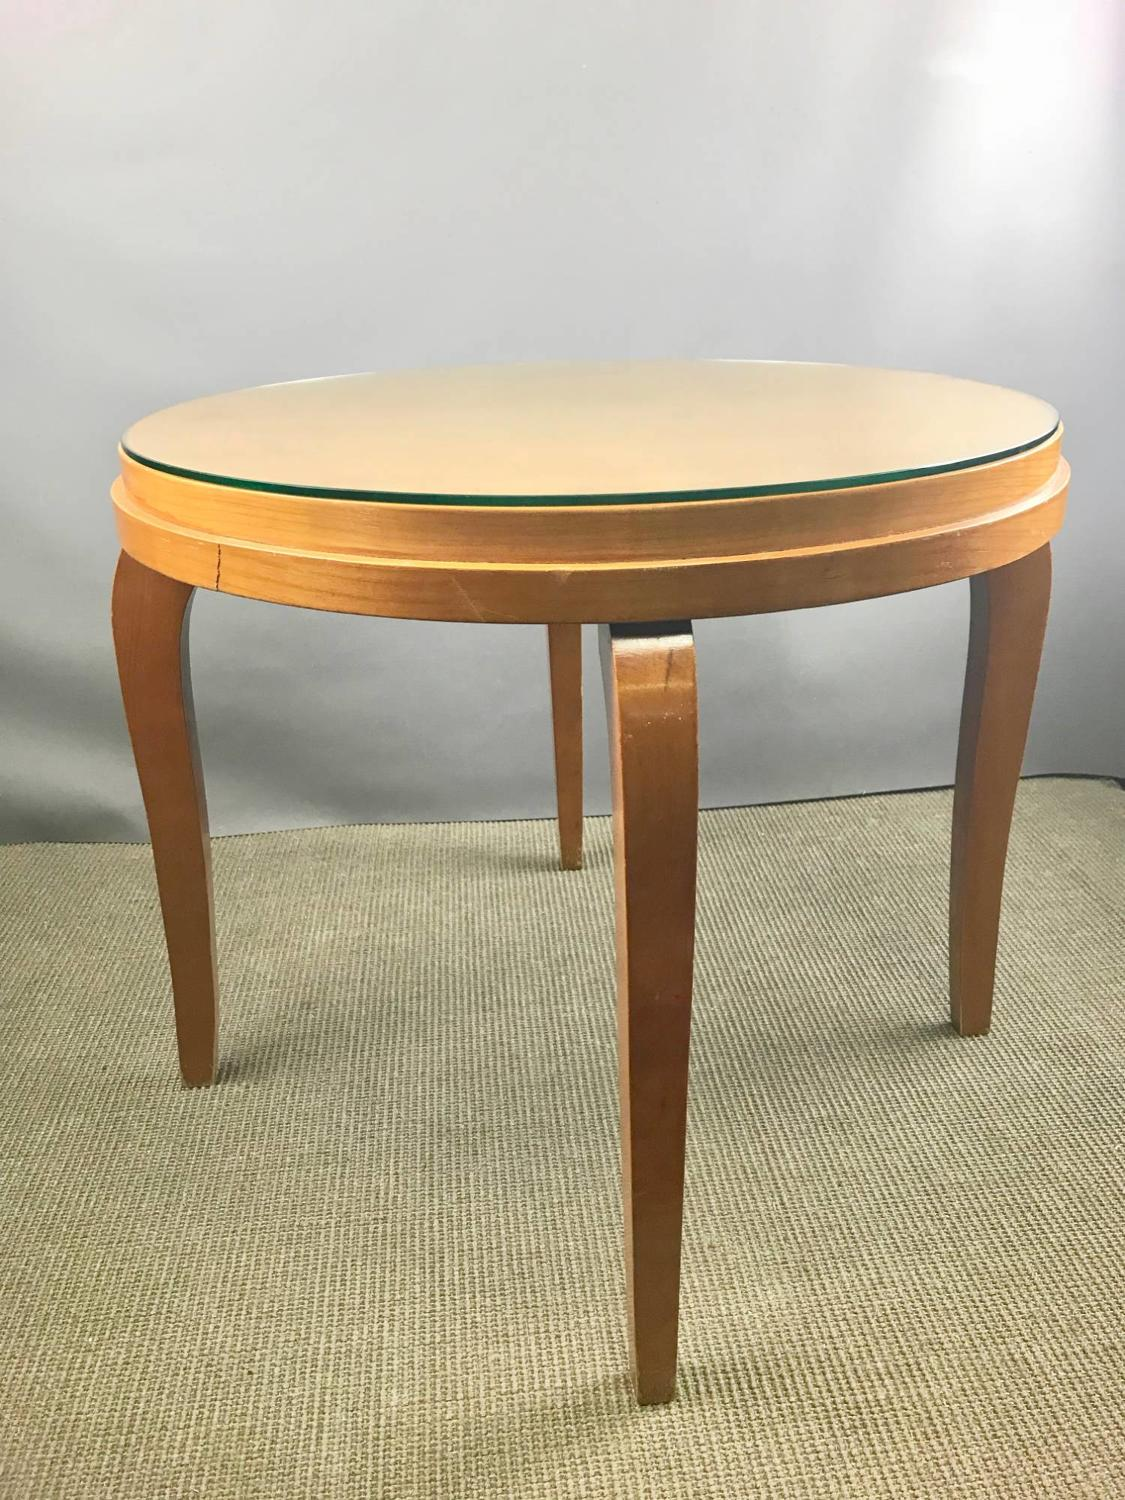 French 1940's Pale Walnut Circular Coffee Table